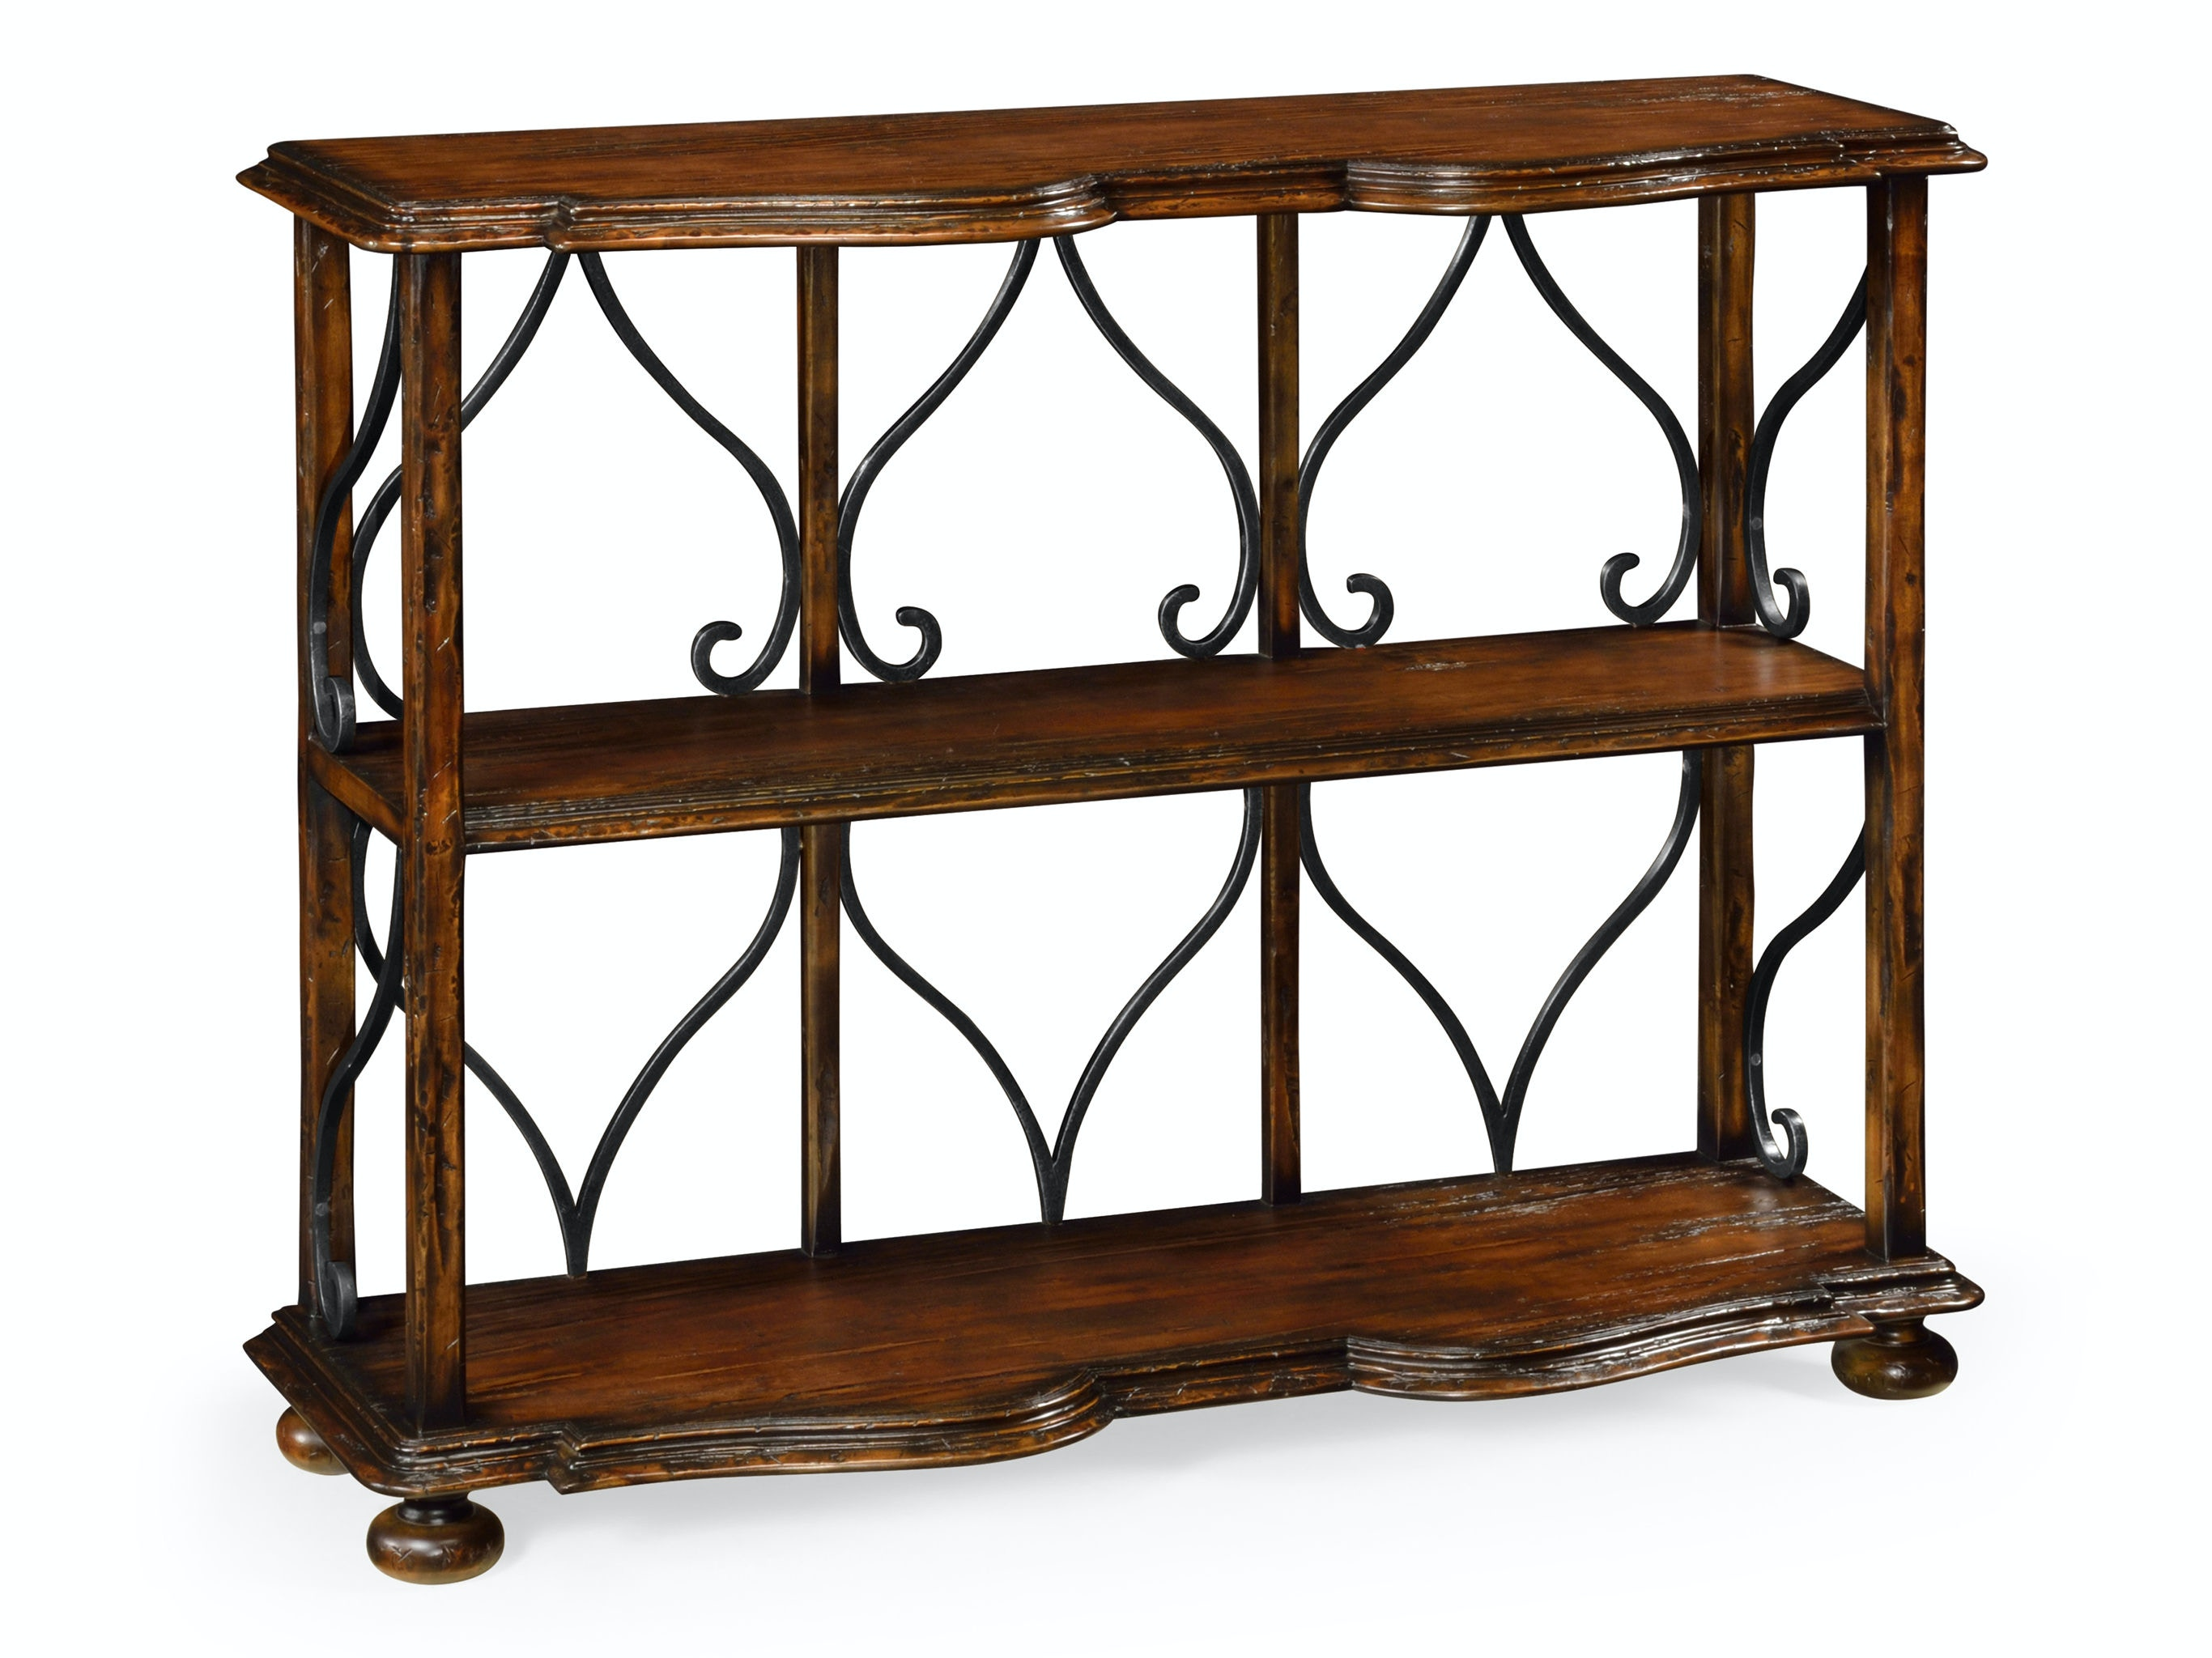 Jonathan Charles Two Tier Etagere In Rustic Walnut 495538 RWL